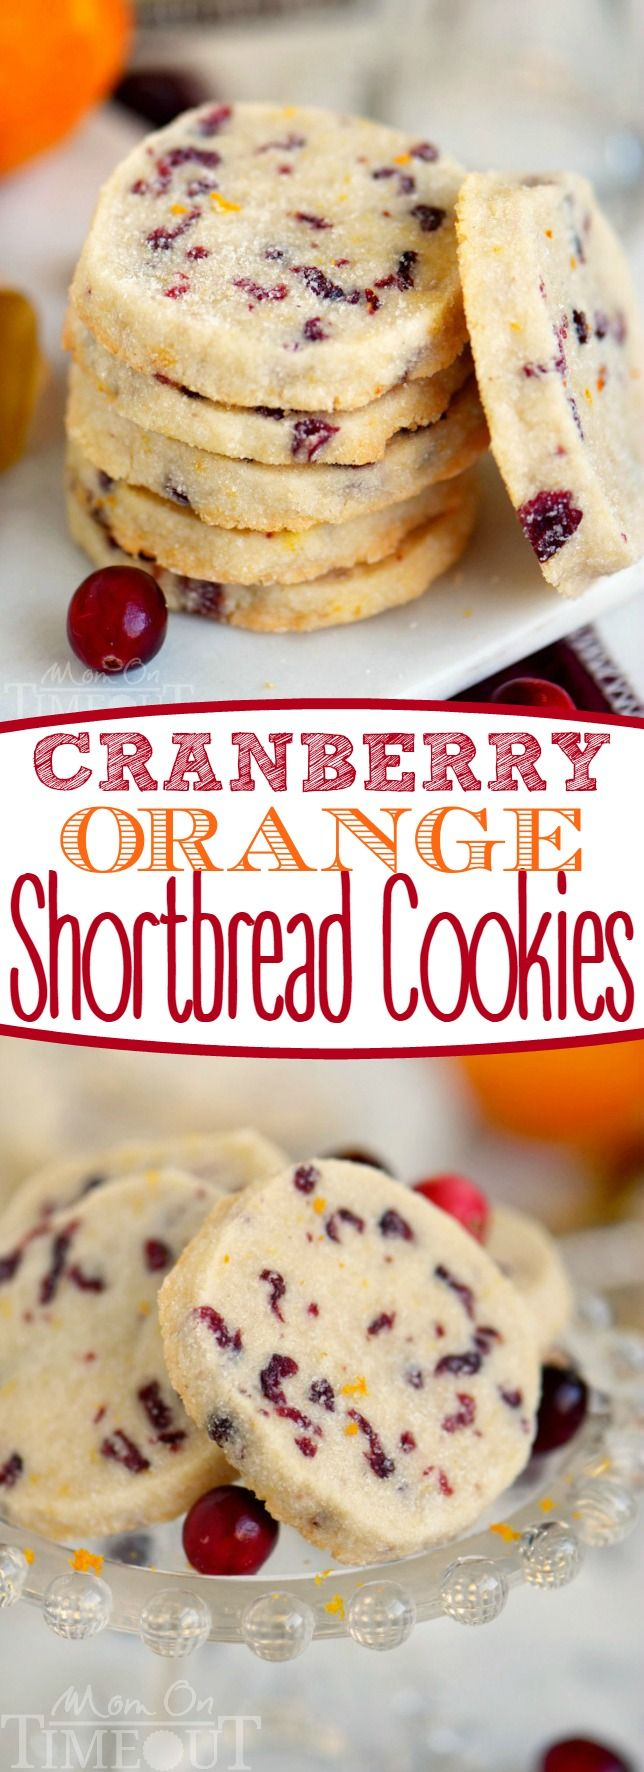 A delightfully easy cookie recipe that yields sensational results! I'm sharing three secrets to the perfect shortbread cookies that no one can resist! Make sure to add these easy Cranberry Orange Shortbread Cookies to your holiday baking list this season! // Mom On Timeout